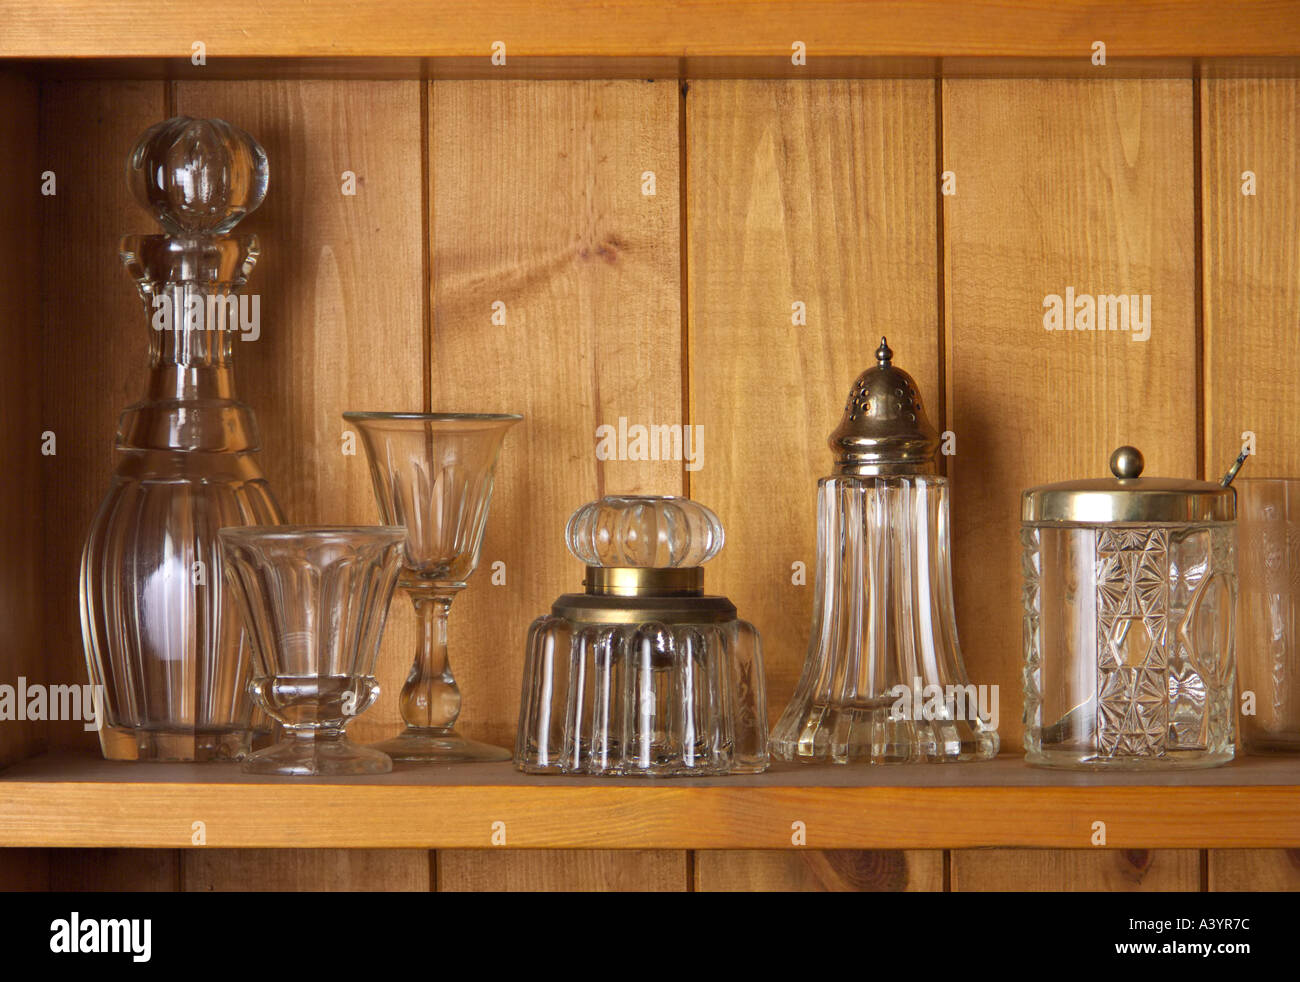 Antique glass on a wooden shelf - Stock Image